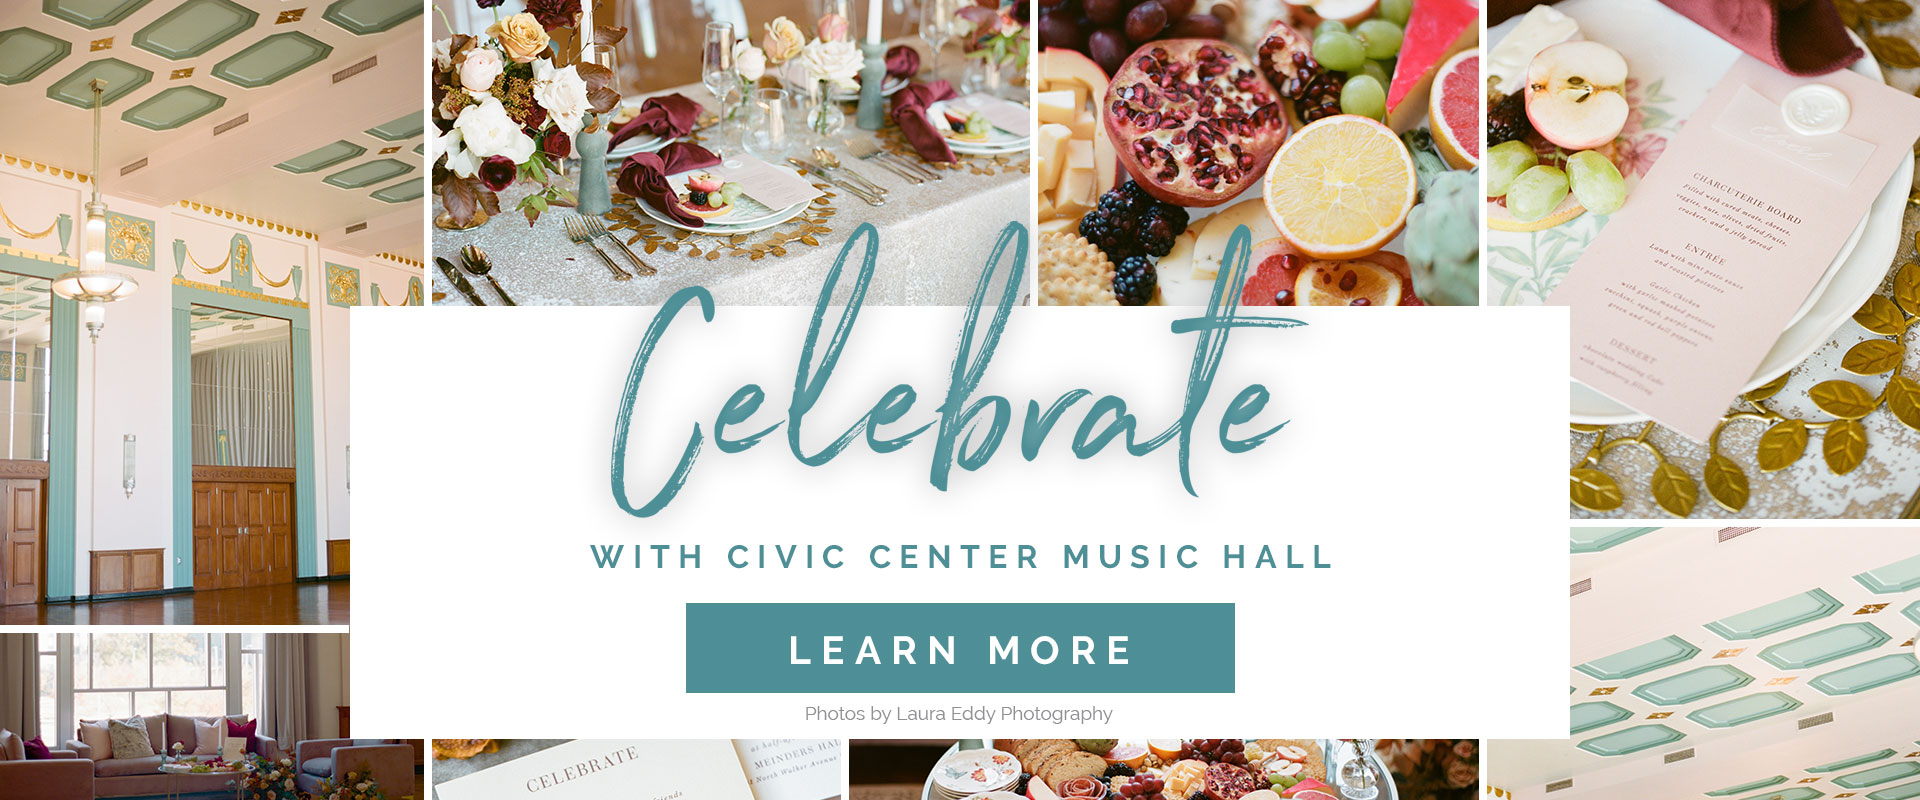 Celebrate with Civic Center Music Hall